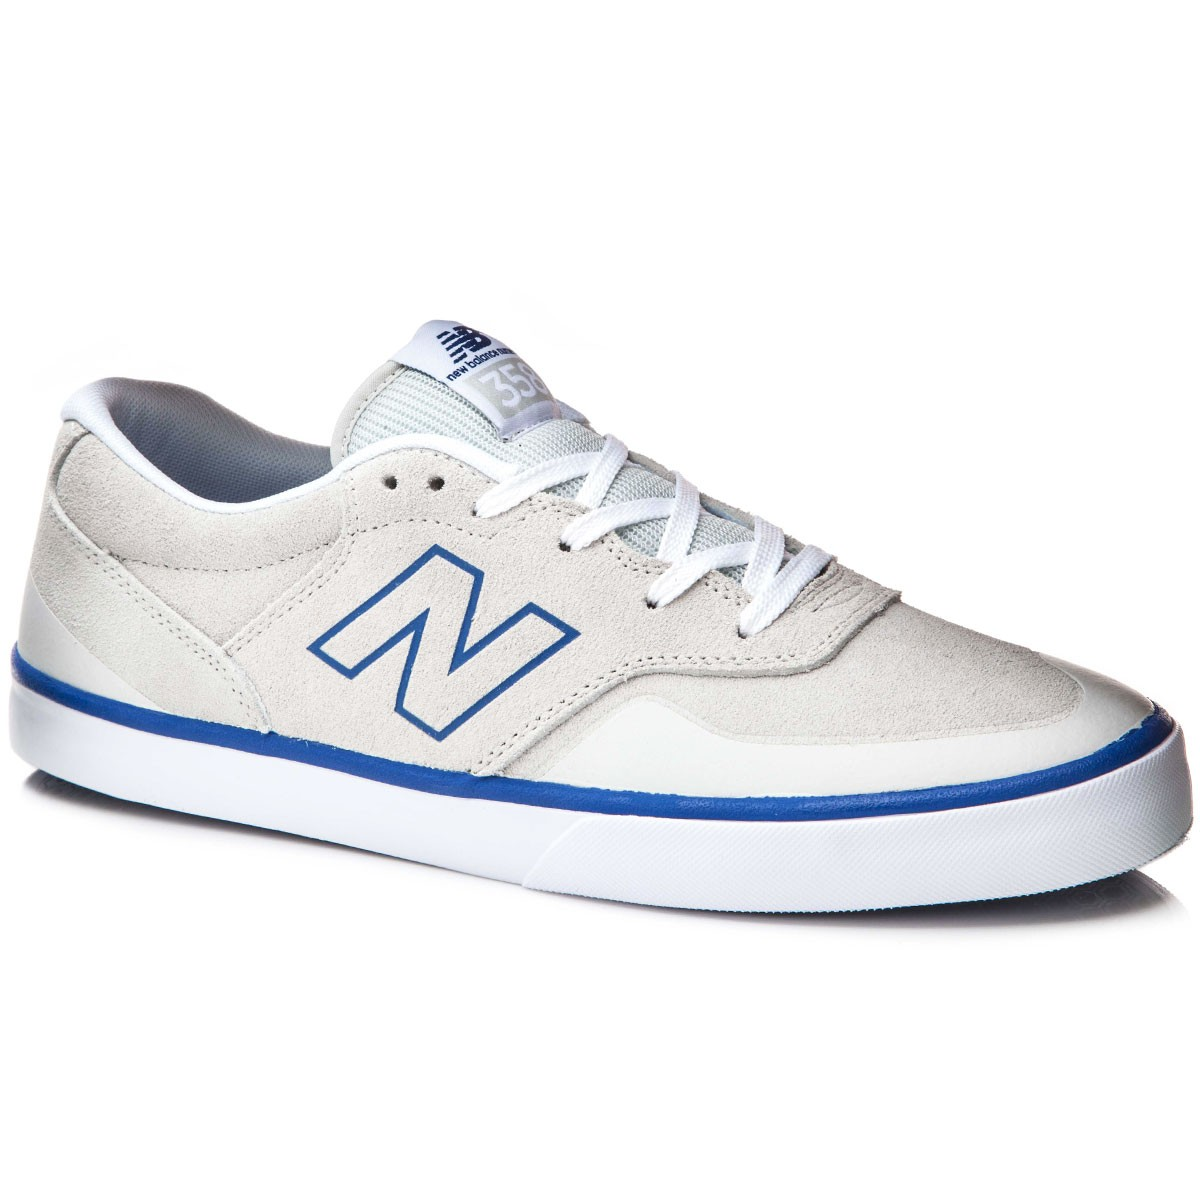 New Balance Arto 358 Shoes - White - 8.0